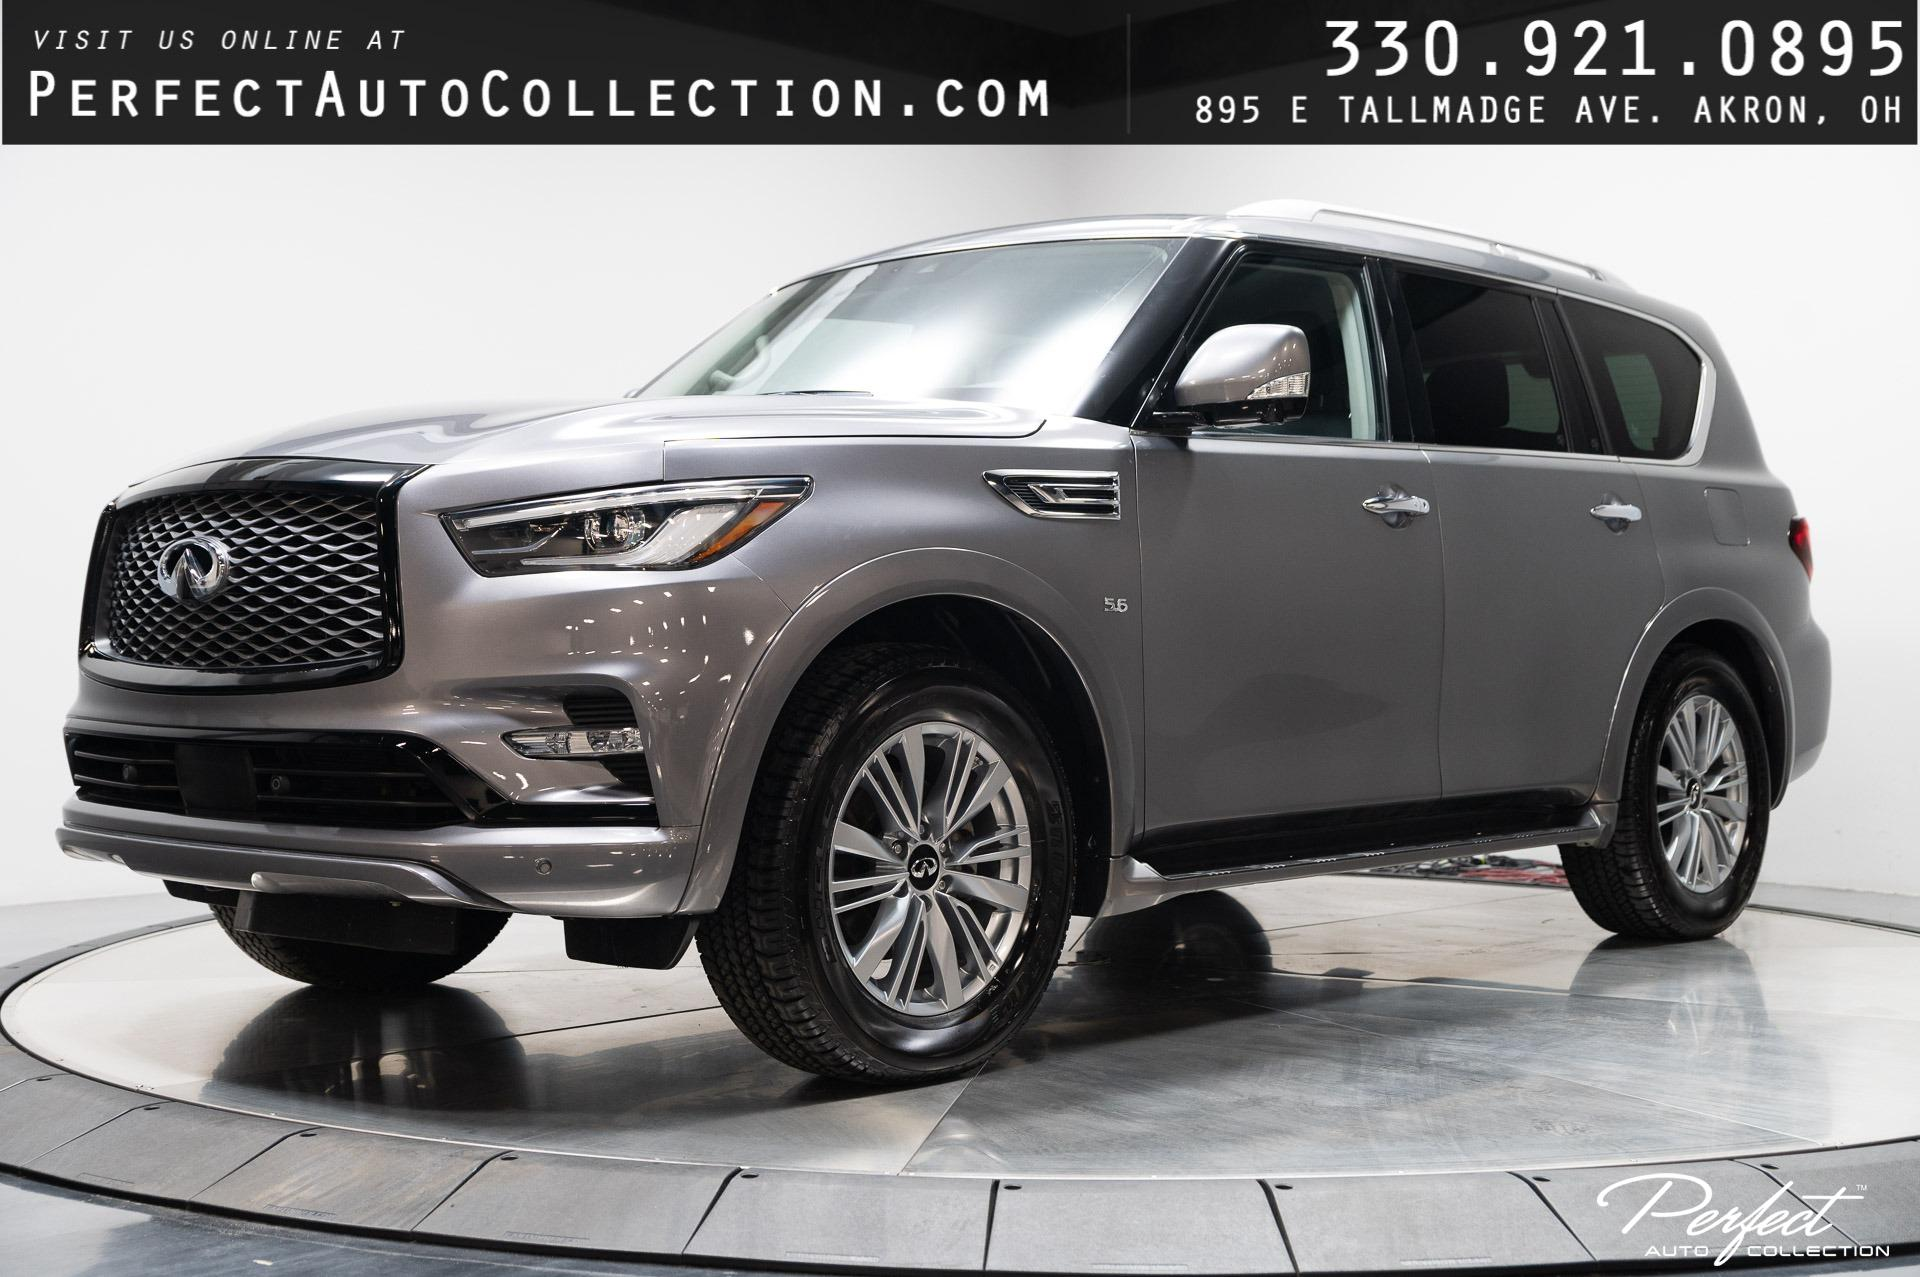 Used 2020 INFINITI QX80 Luxe for sale $59,895 at Perfect Auto Collection in Akron OH 44310 1